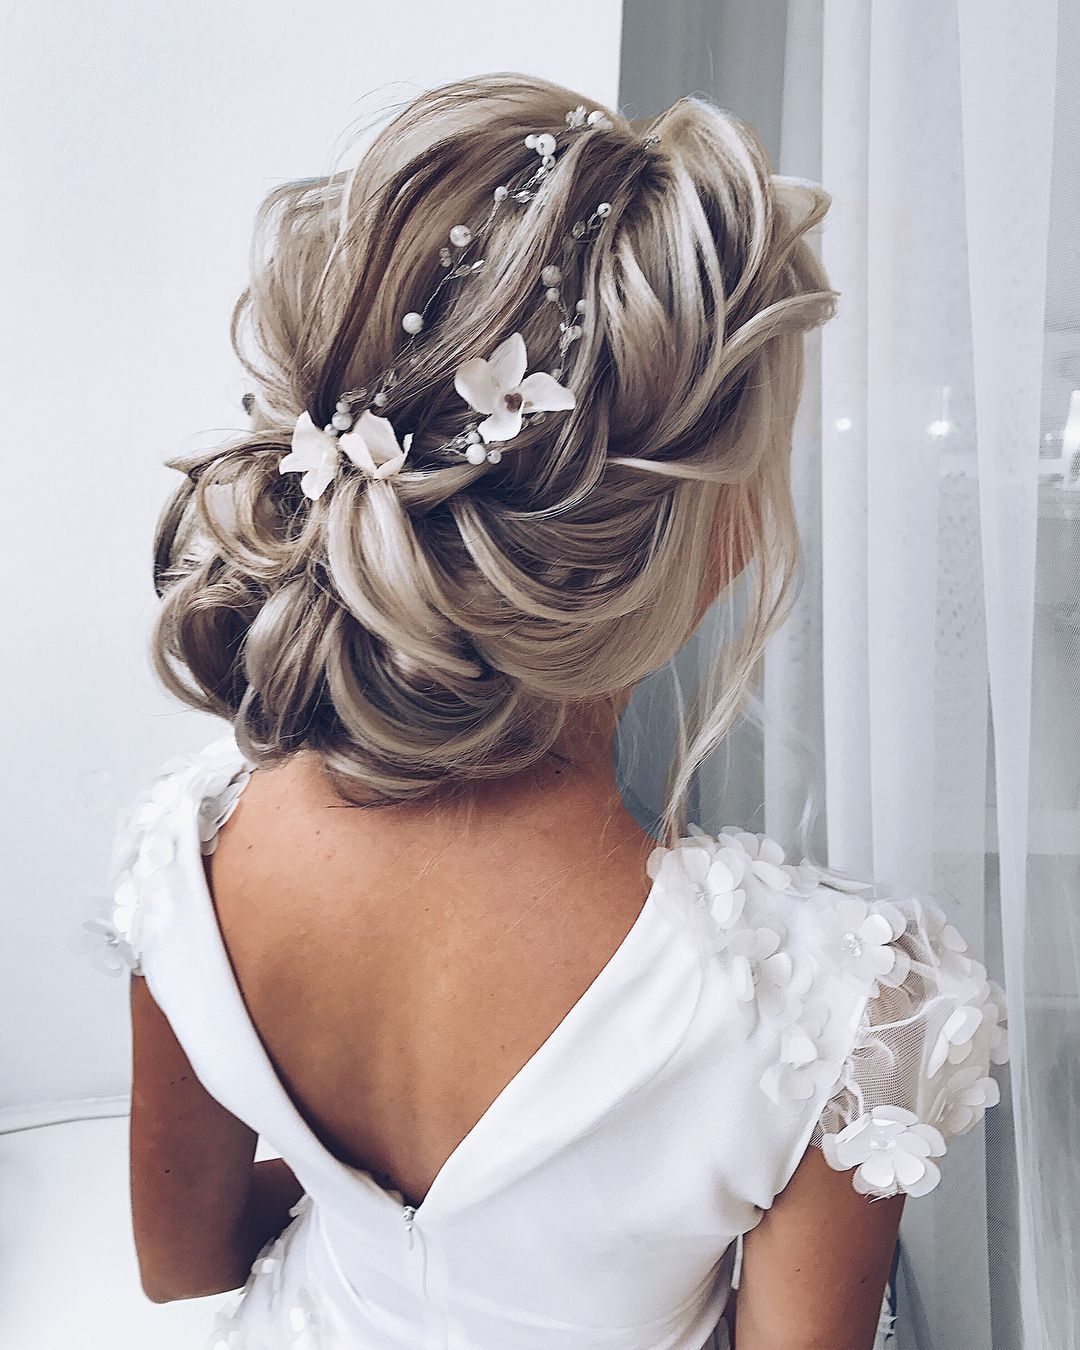 Wedding Hairstyles 2019: 20 Best Formal / Wedding Hairstyles To Copy In 2019